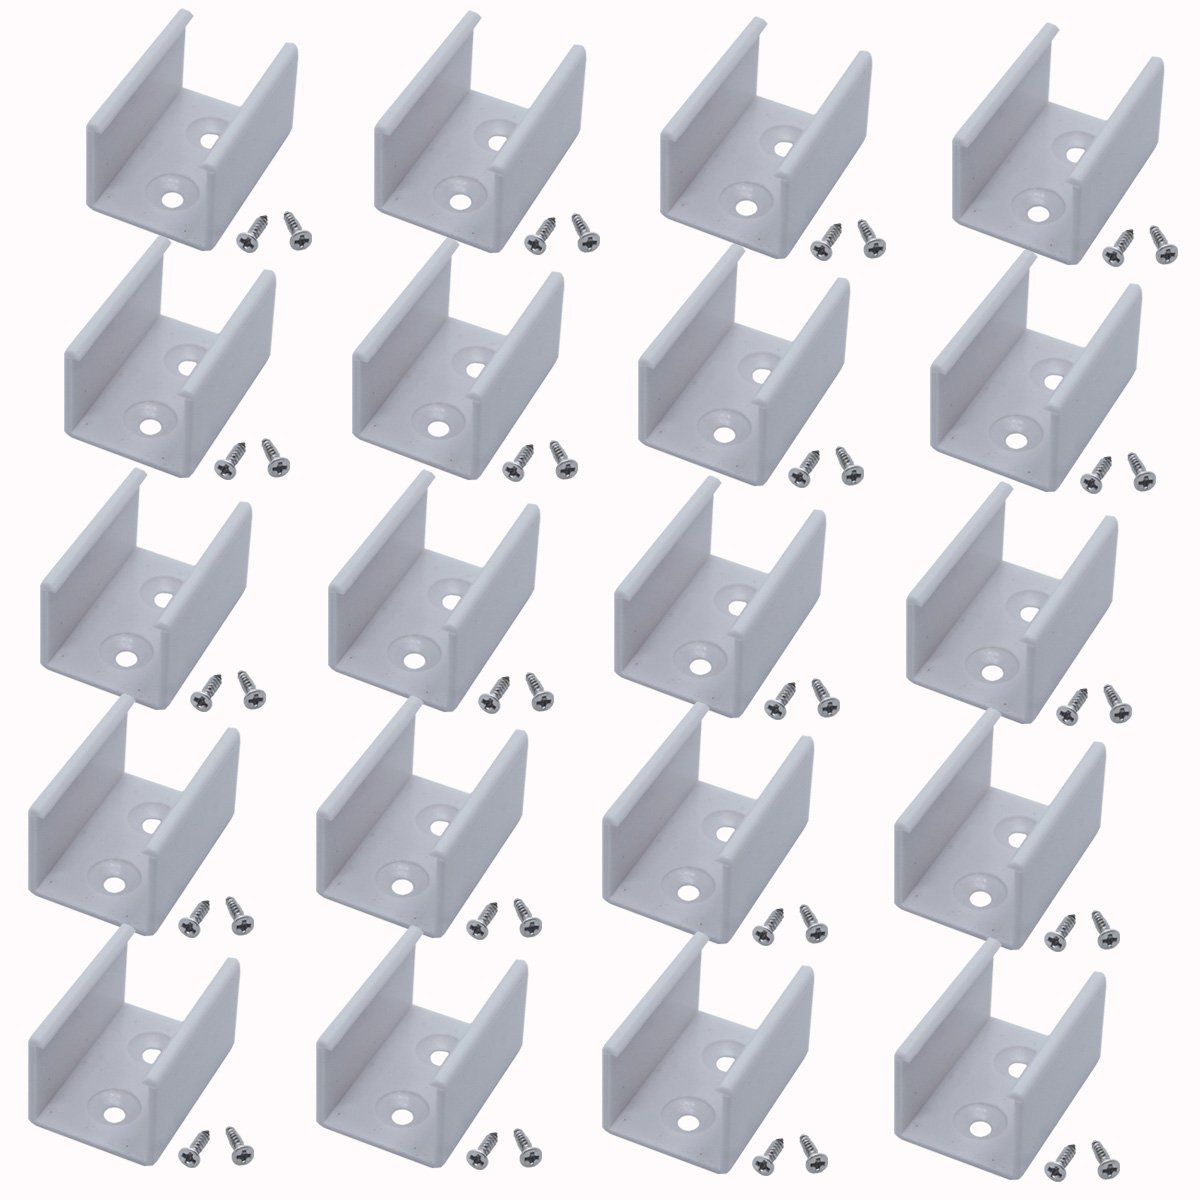 Litever 180 Degree Seamless Extension Connectors for Litever Deep Aluminum Channels Connection/Jonint,Screws Included,20 Pack LL-007-180A [20 Pack]